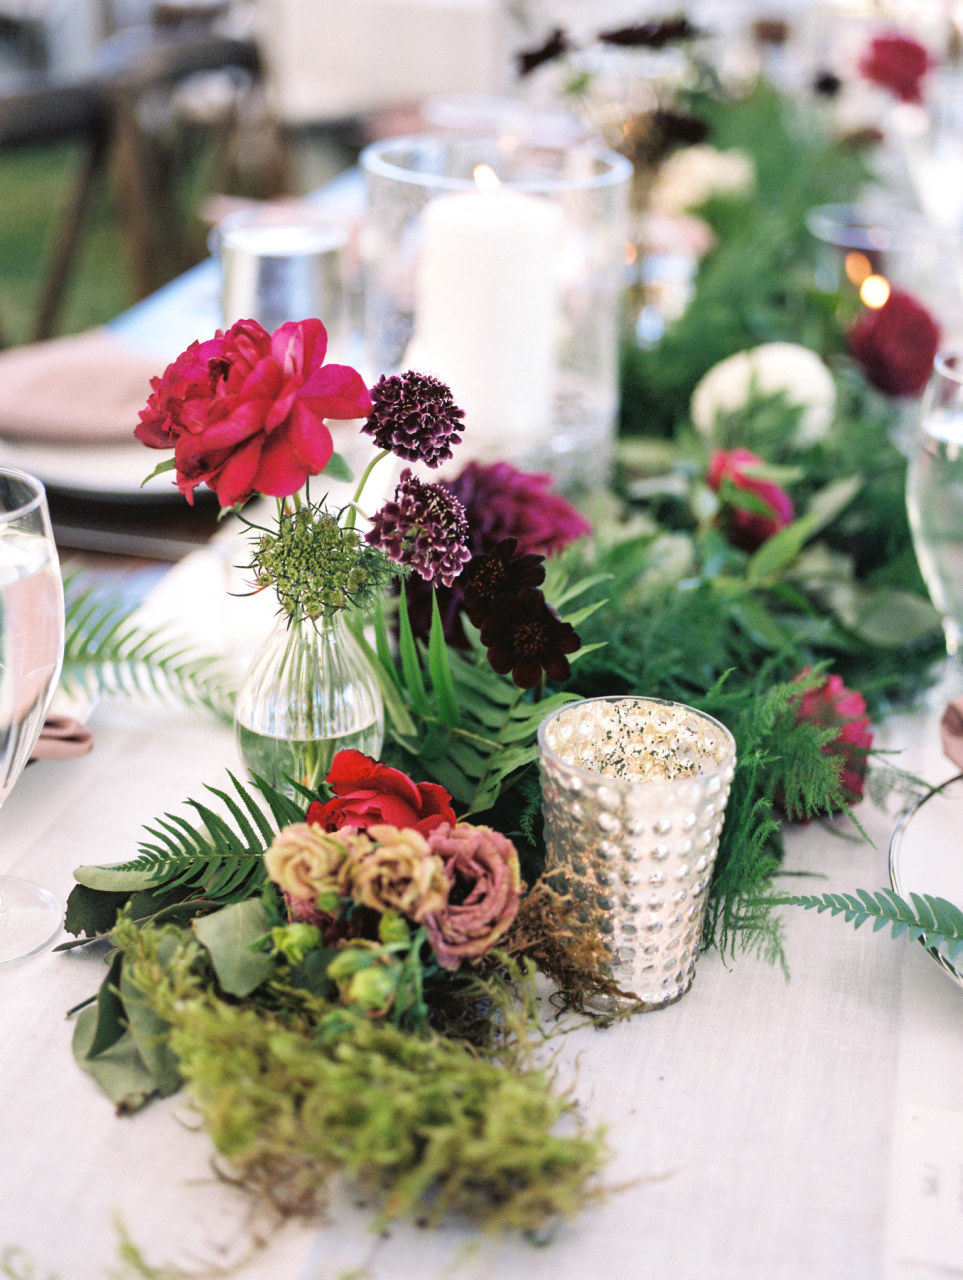 fine-art-wedding-florist-foraged-floral-lewis-and-clark-college-wedding-centerpiece-with-peonies-moss-and-garden-roses.jpg